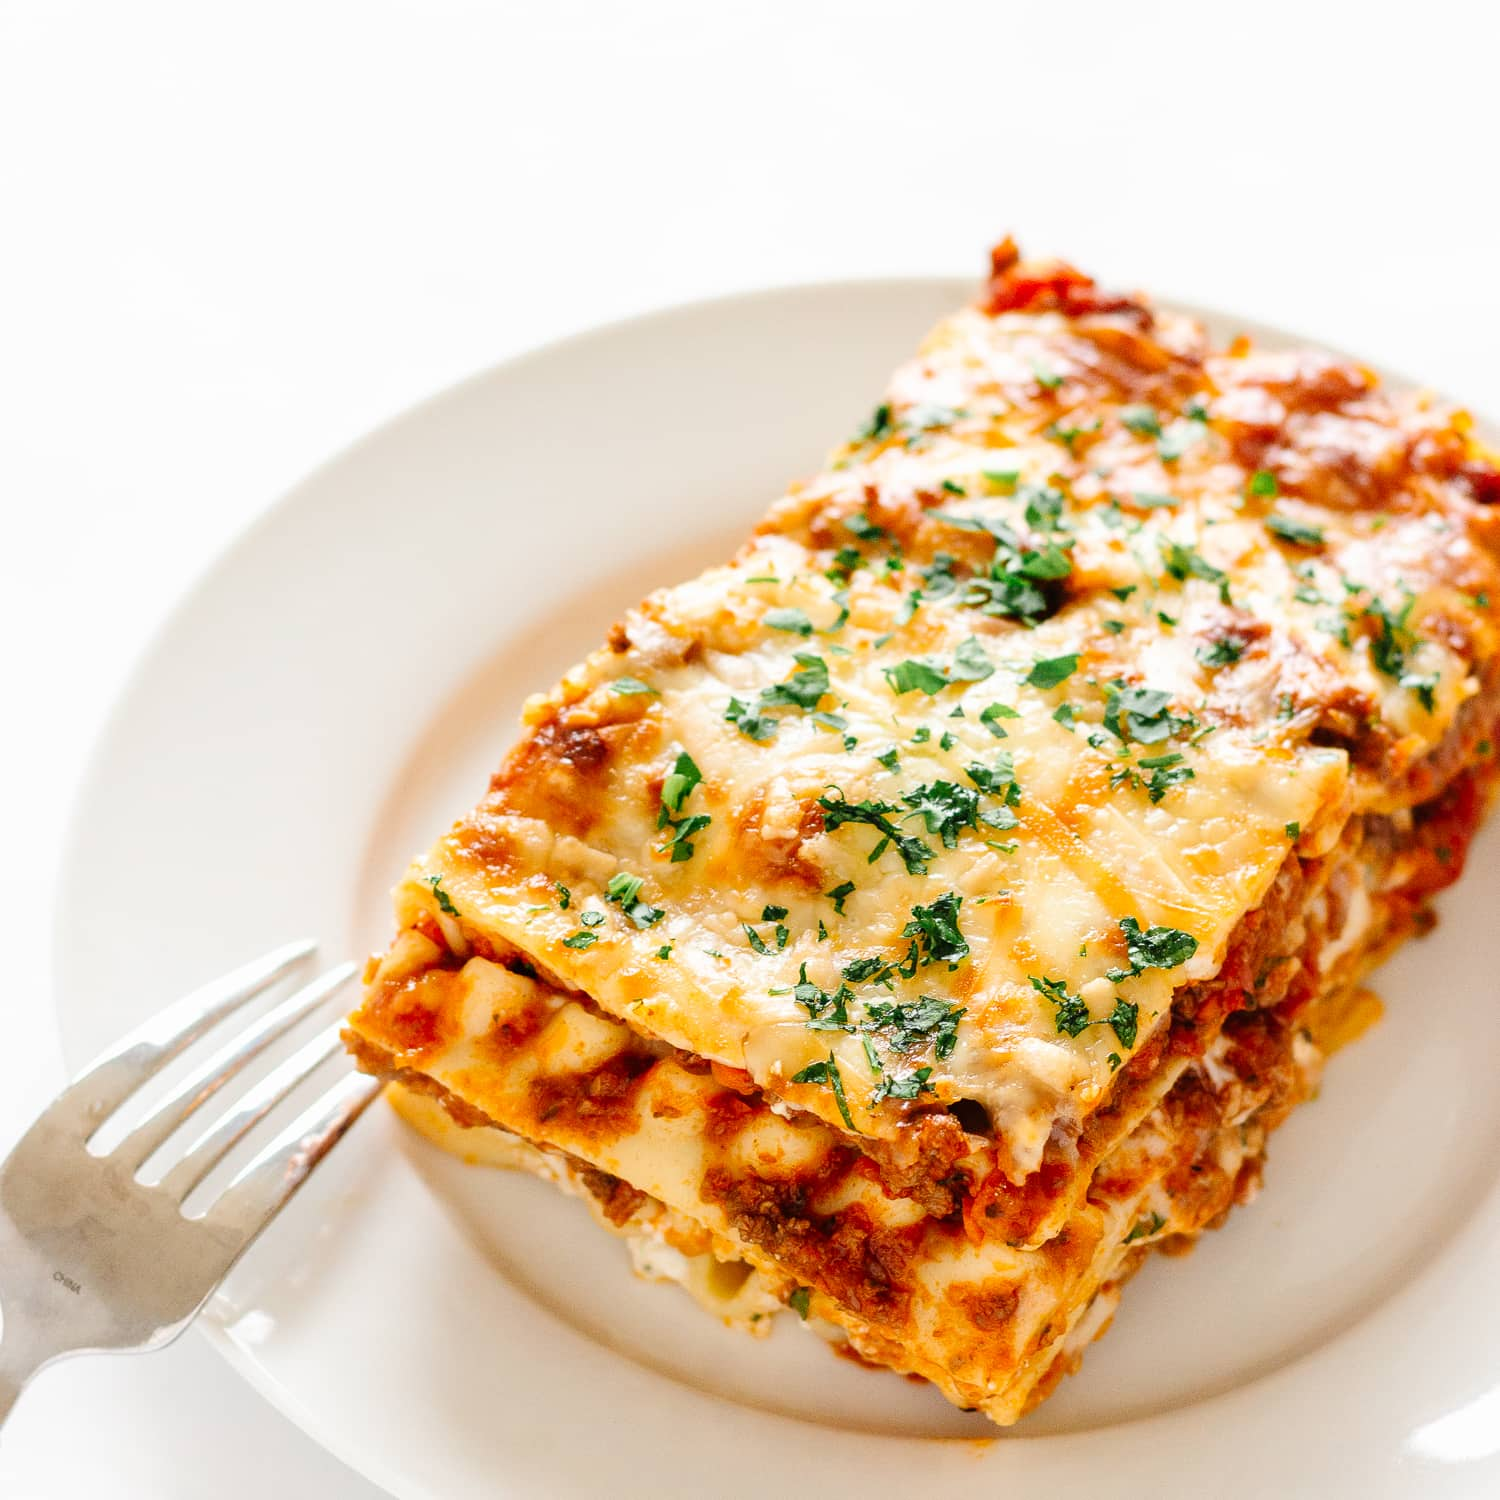 Slice of lasagna on a white plate with fork resting on the side.